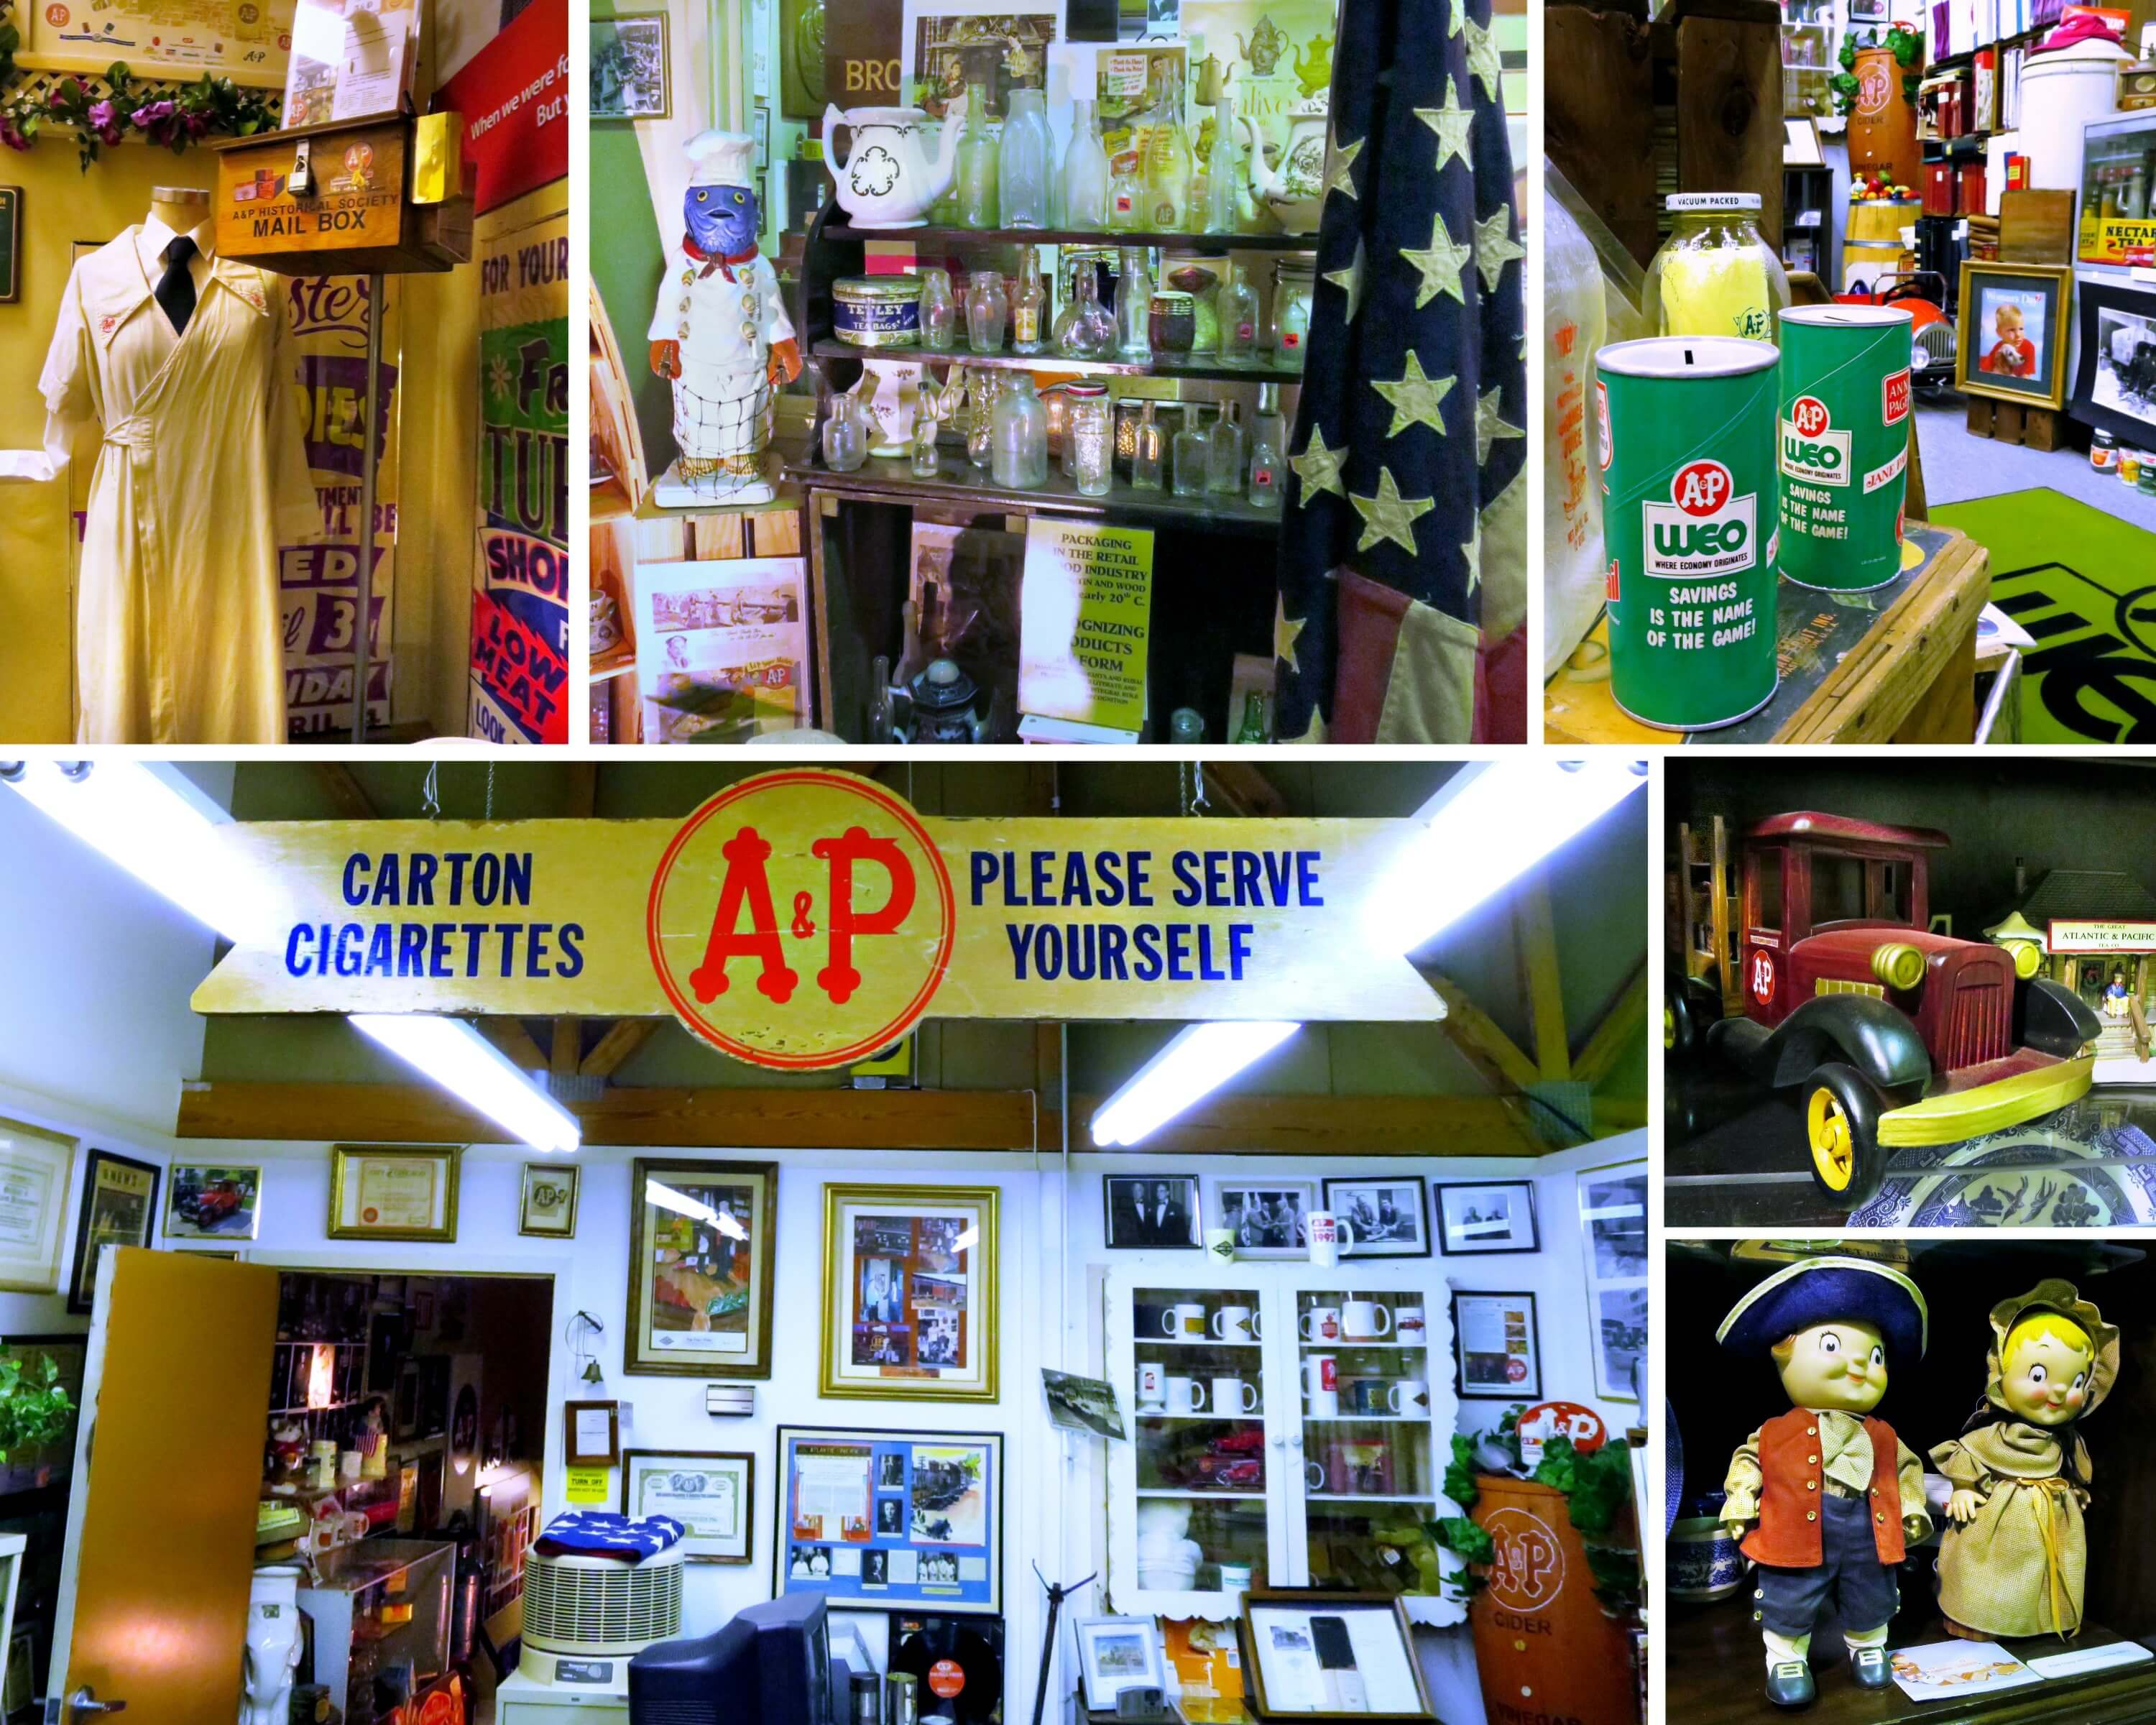 EastFallsLocal supermarket museum collage all kinds of stuff including Carton Serve Yourself kids not music